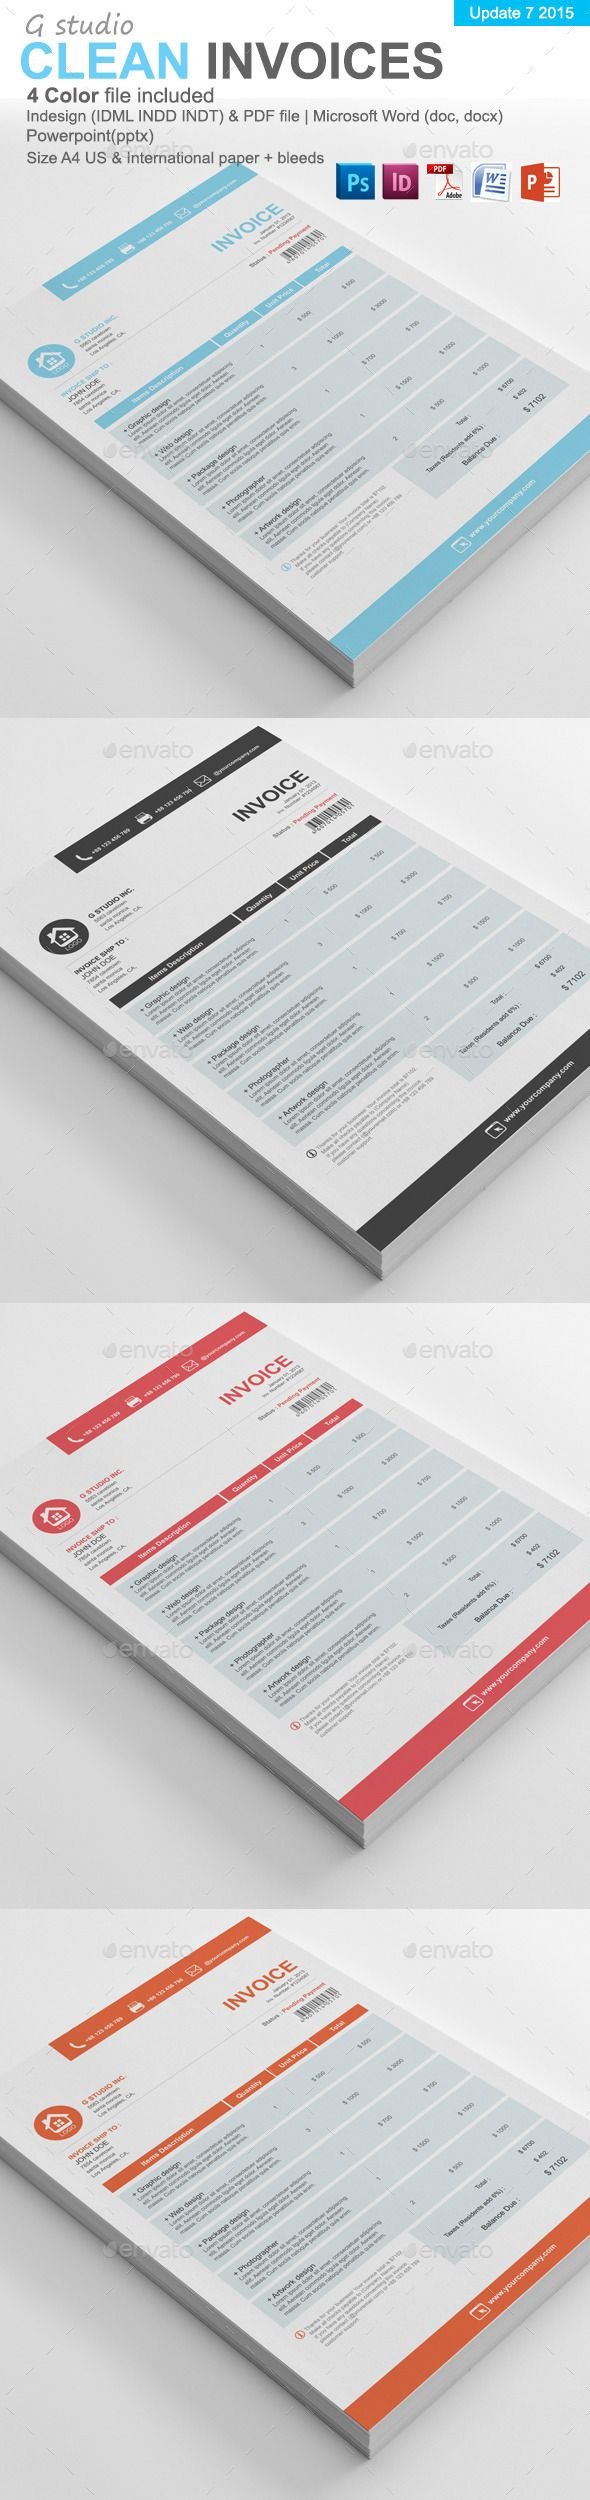 proposal template for word%0A Gstudio Clean Invoices Template